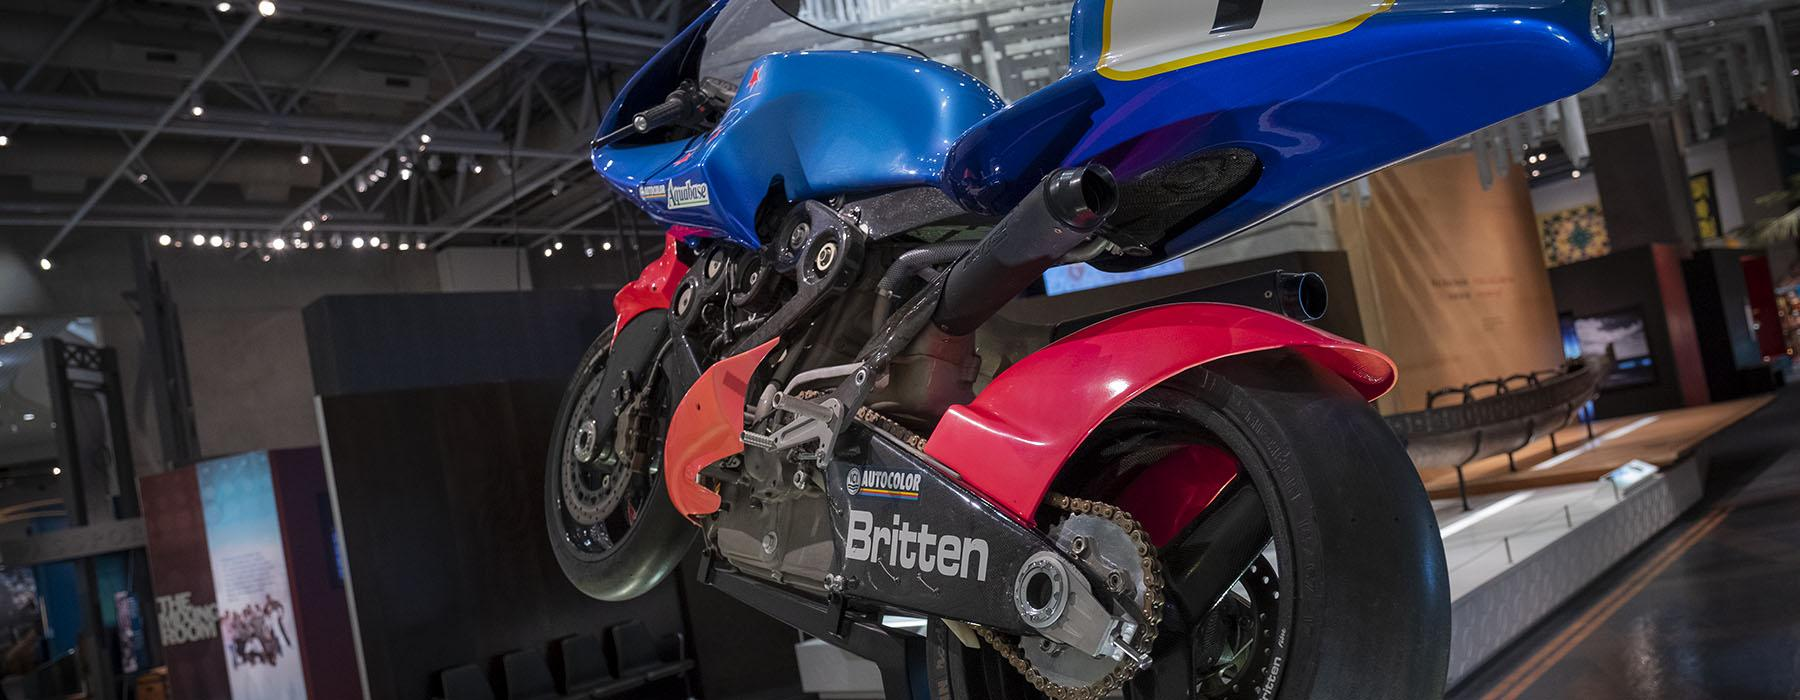 Close up of a motorbike in the museum